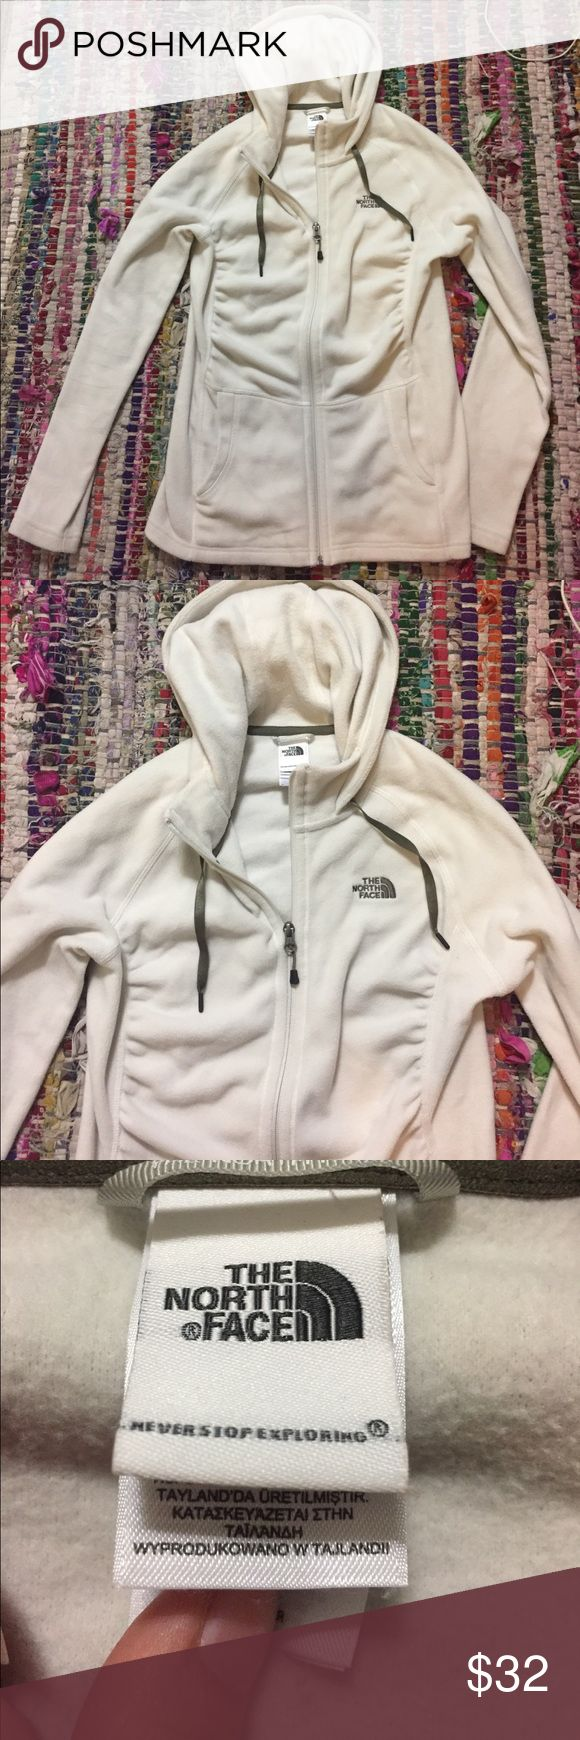 Sale !!!✨NEW ✨The North Face Fleece Jacket This north face jacket cinches in and is very figure flattering. I removed the tag unfortunately but have never worn it. This is the perfect layer piece for freeze cold hiking or single piece for running. Offers are welcomed :) North Face Jackets & Coats